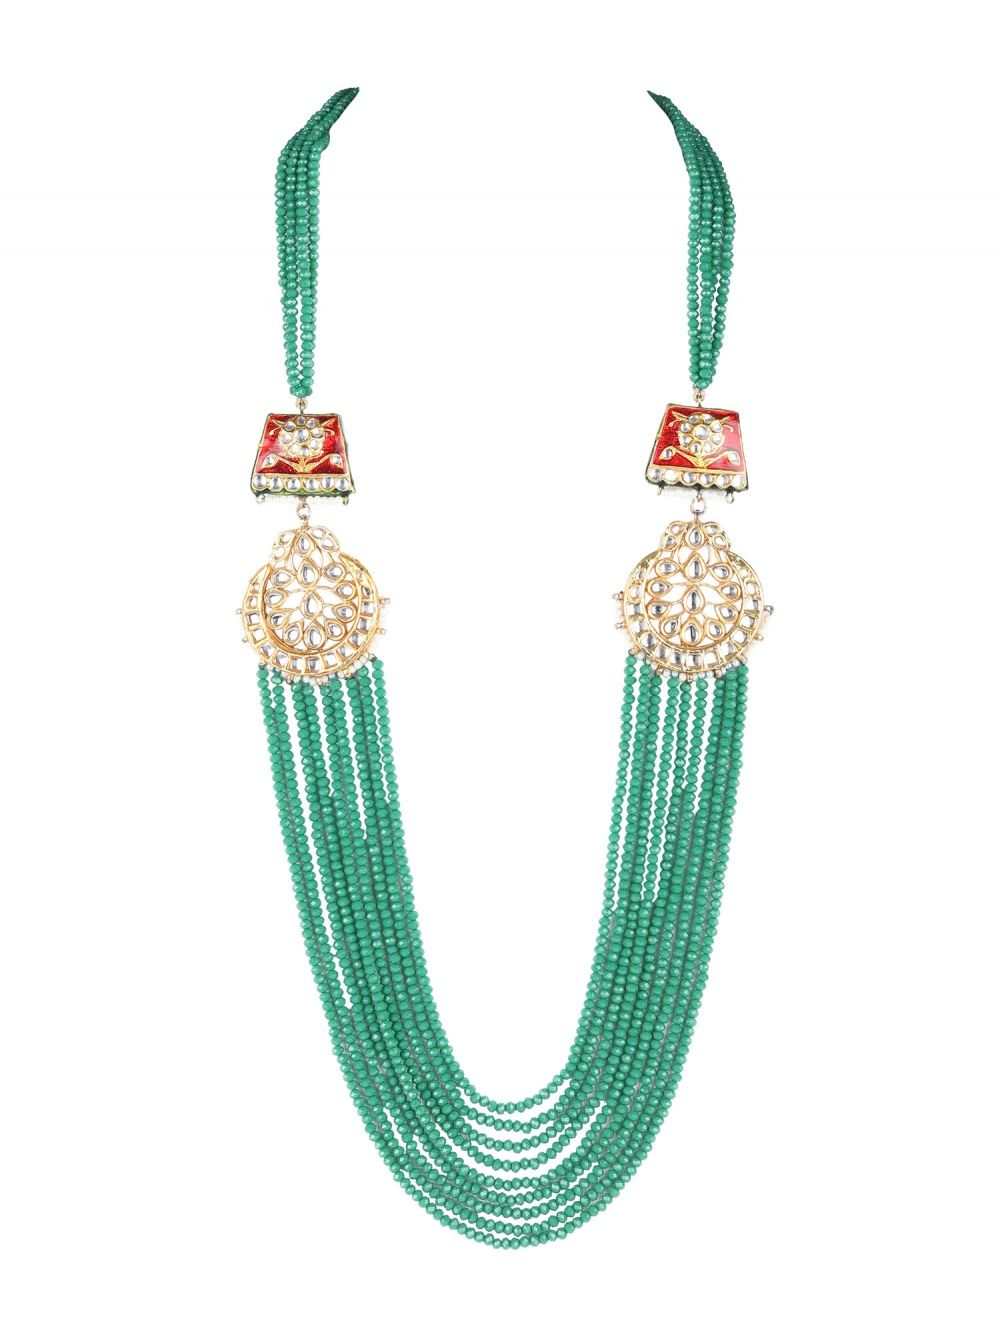 TAD Accessories Layered Green Crystal Necklace